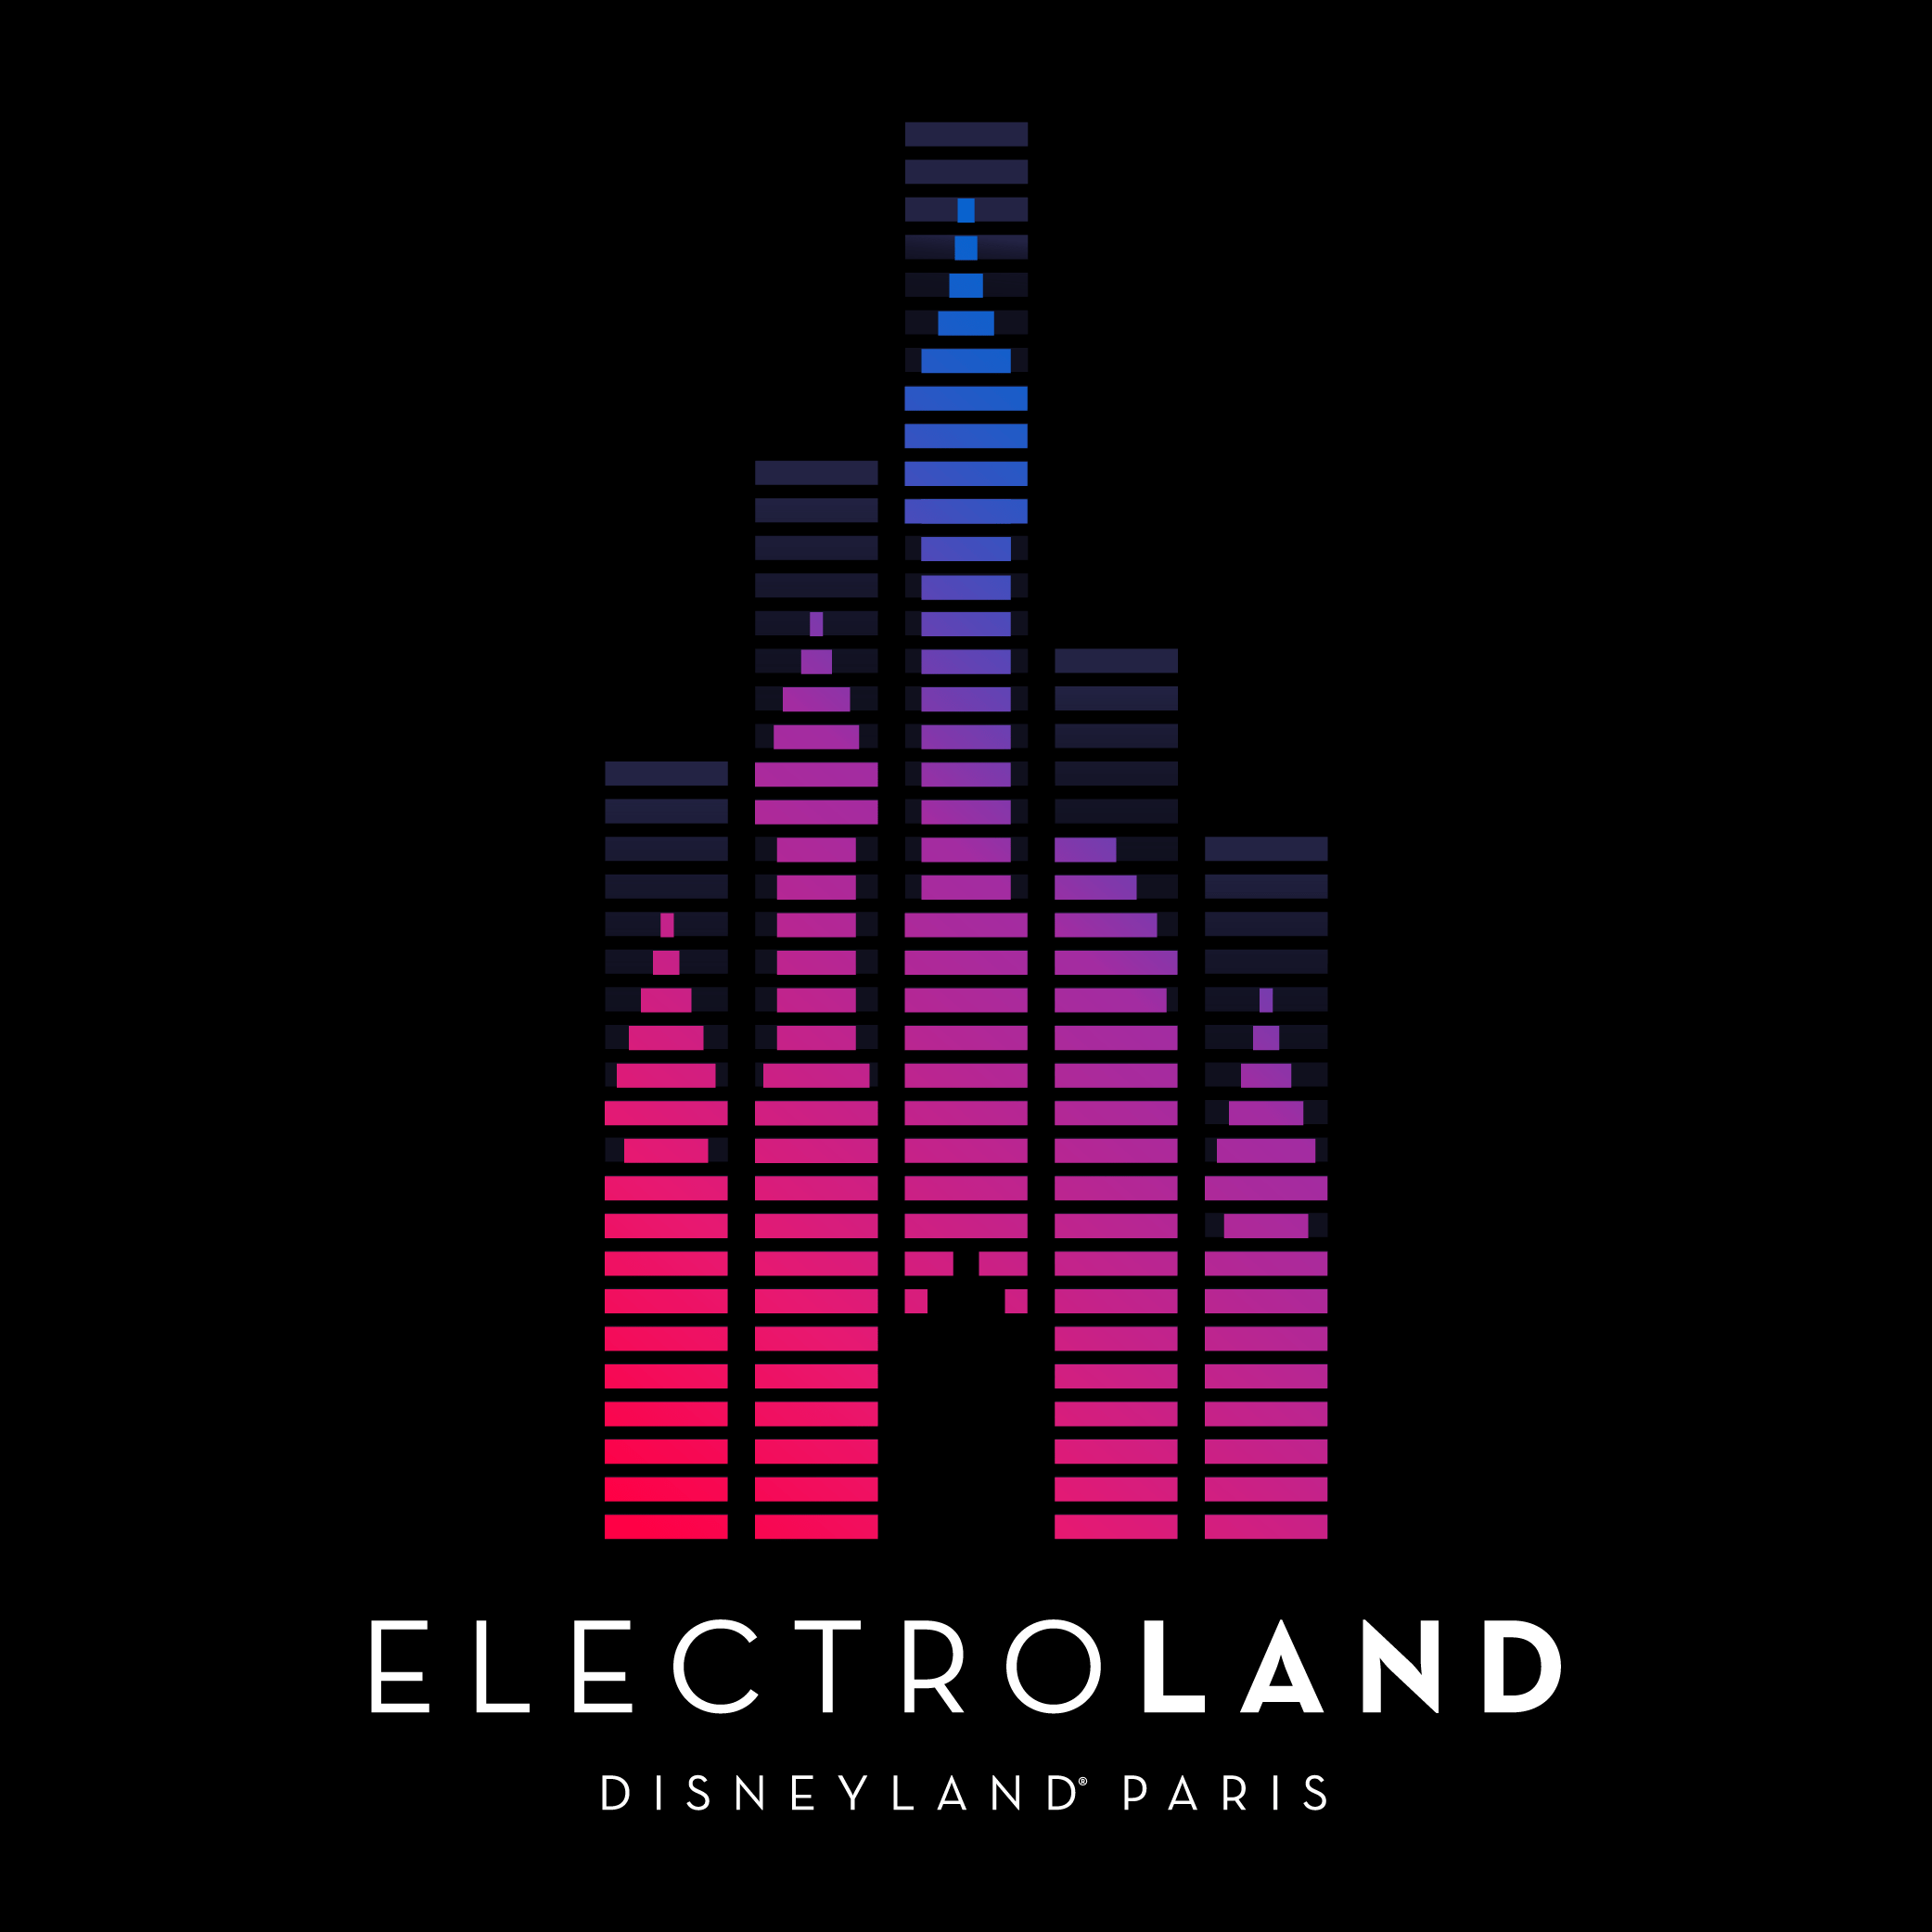 electroland_2018.png